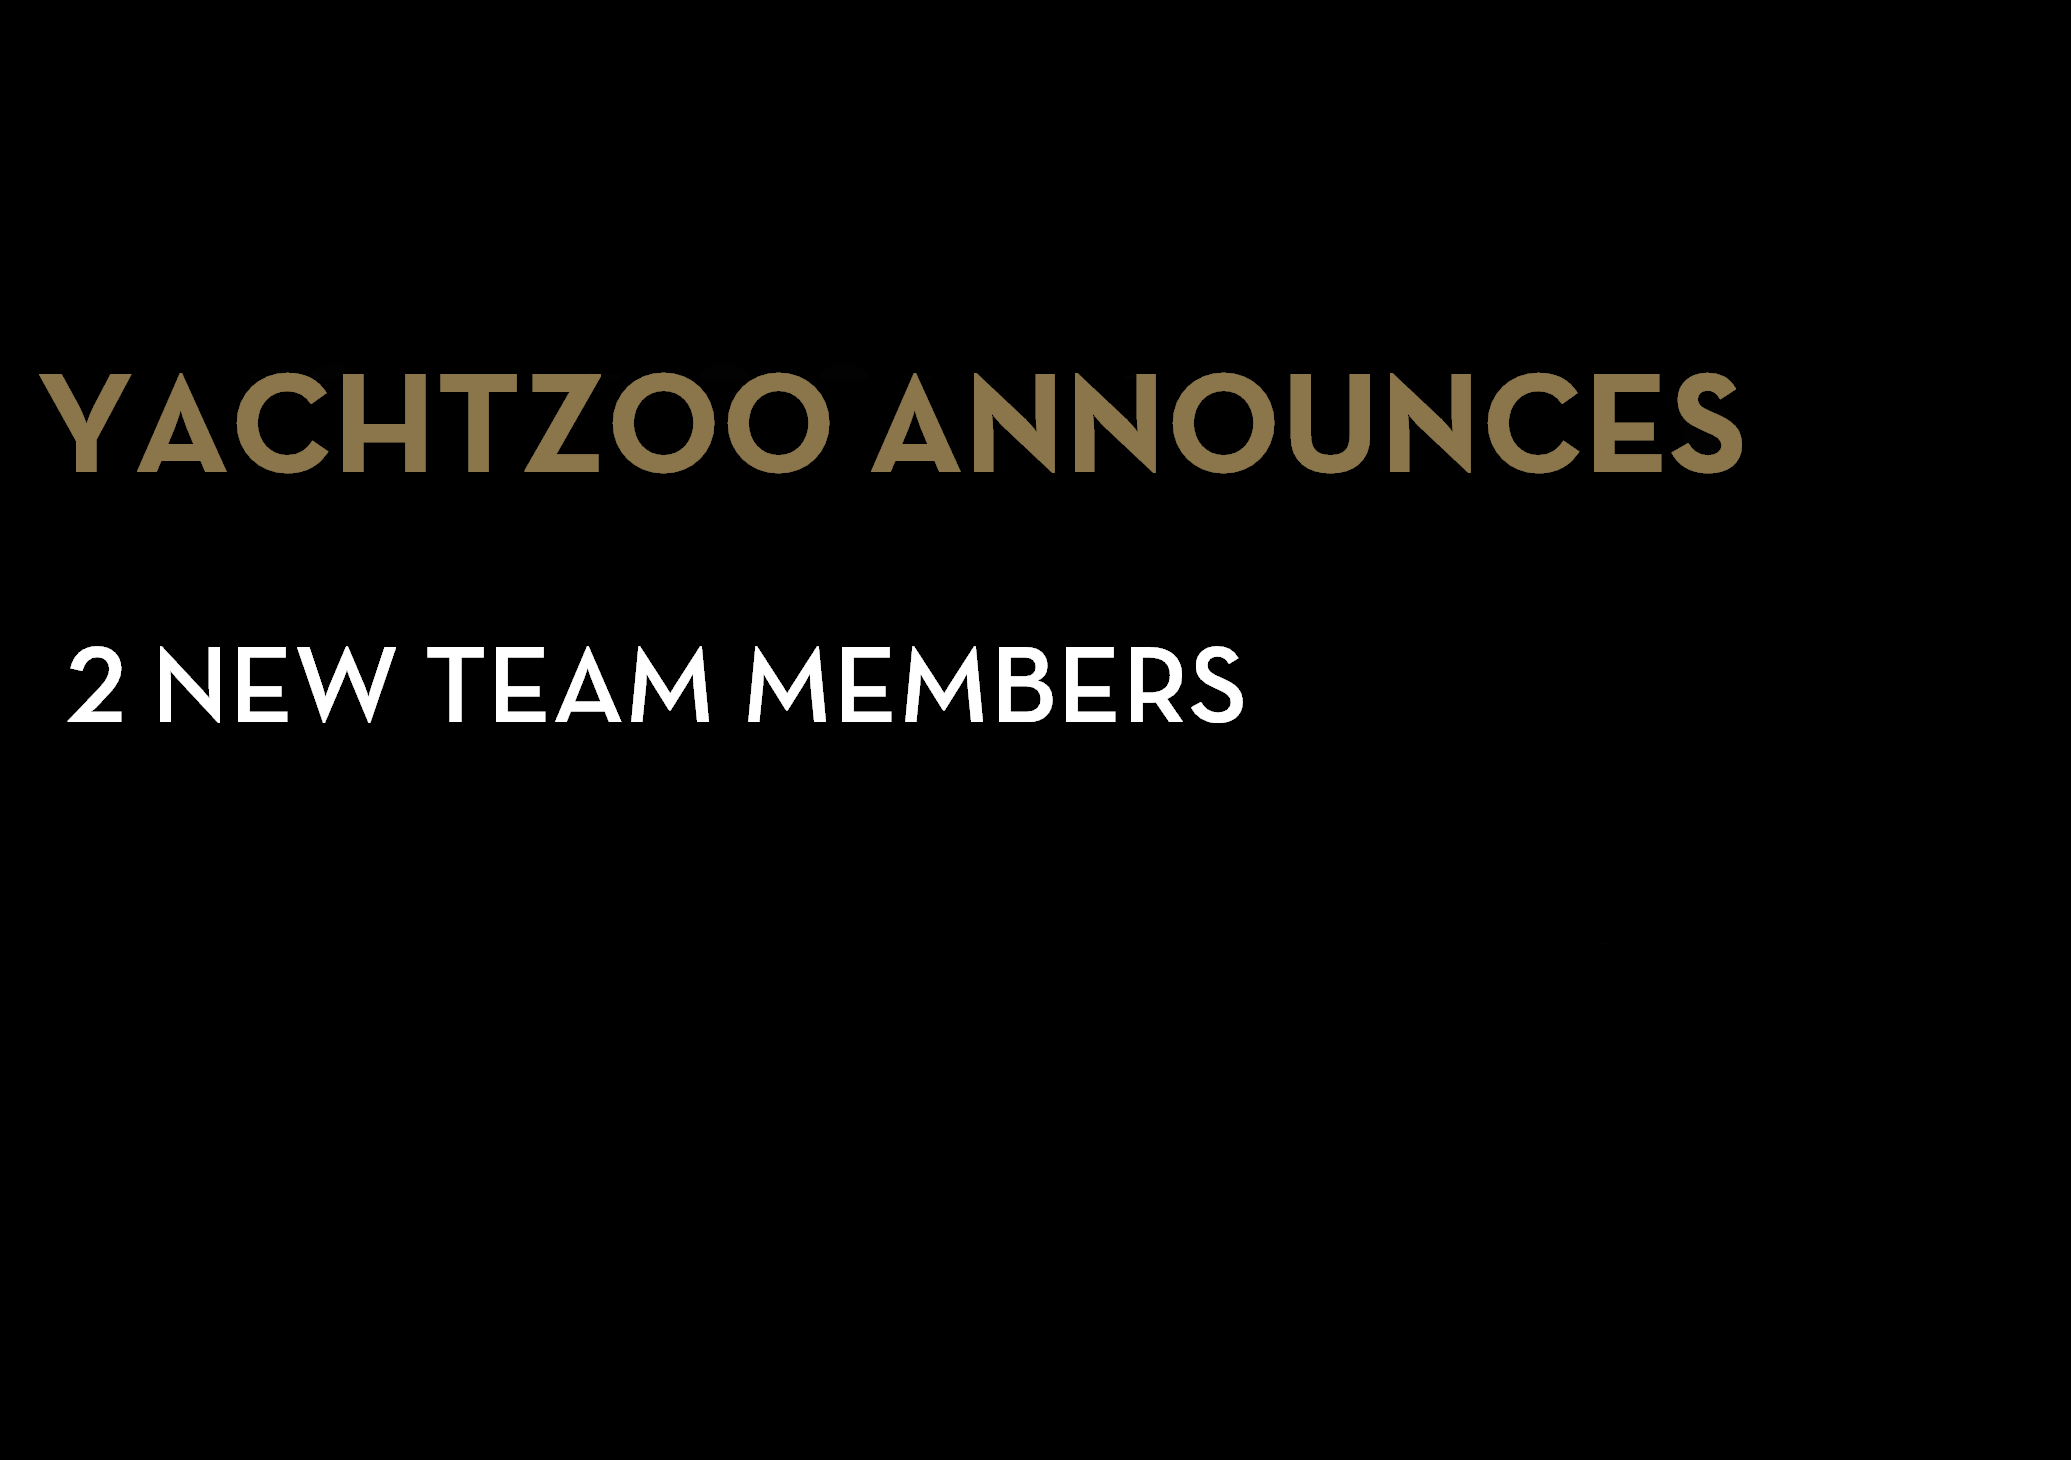 New additions to the YACHTZOO team